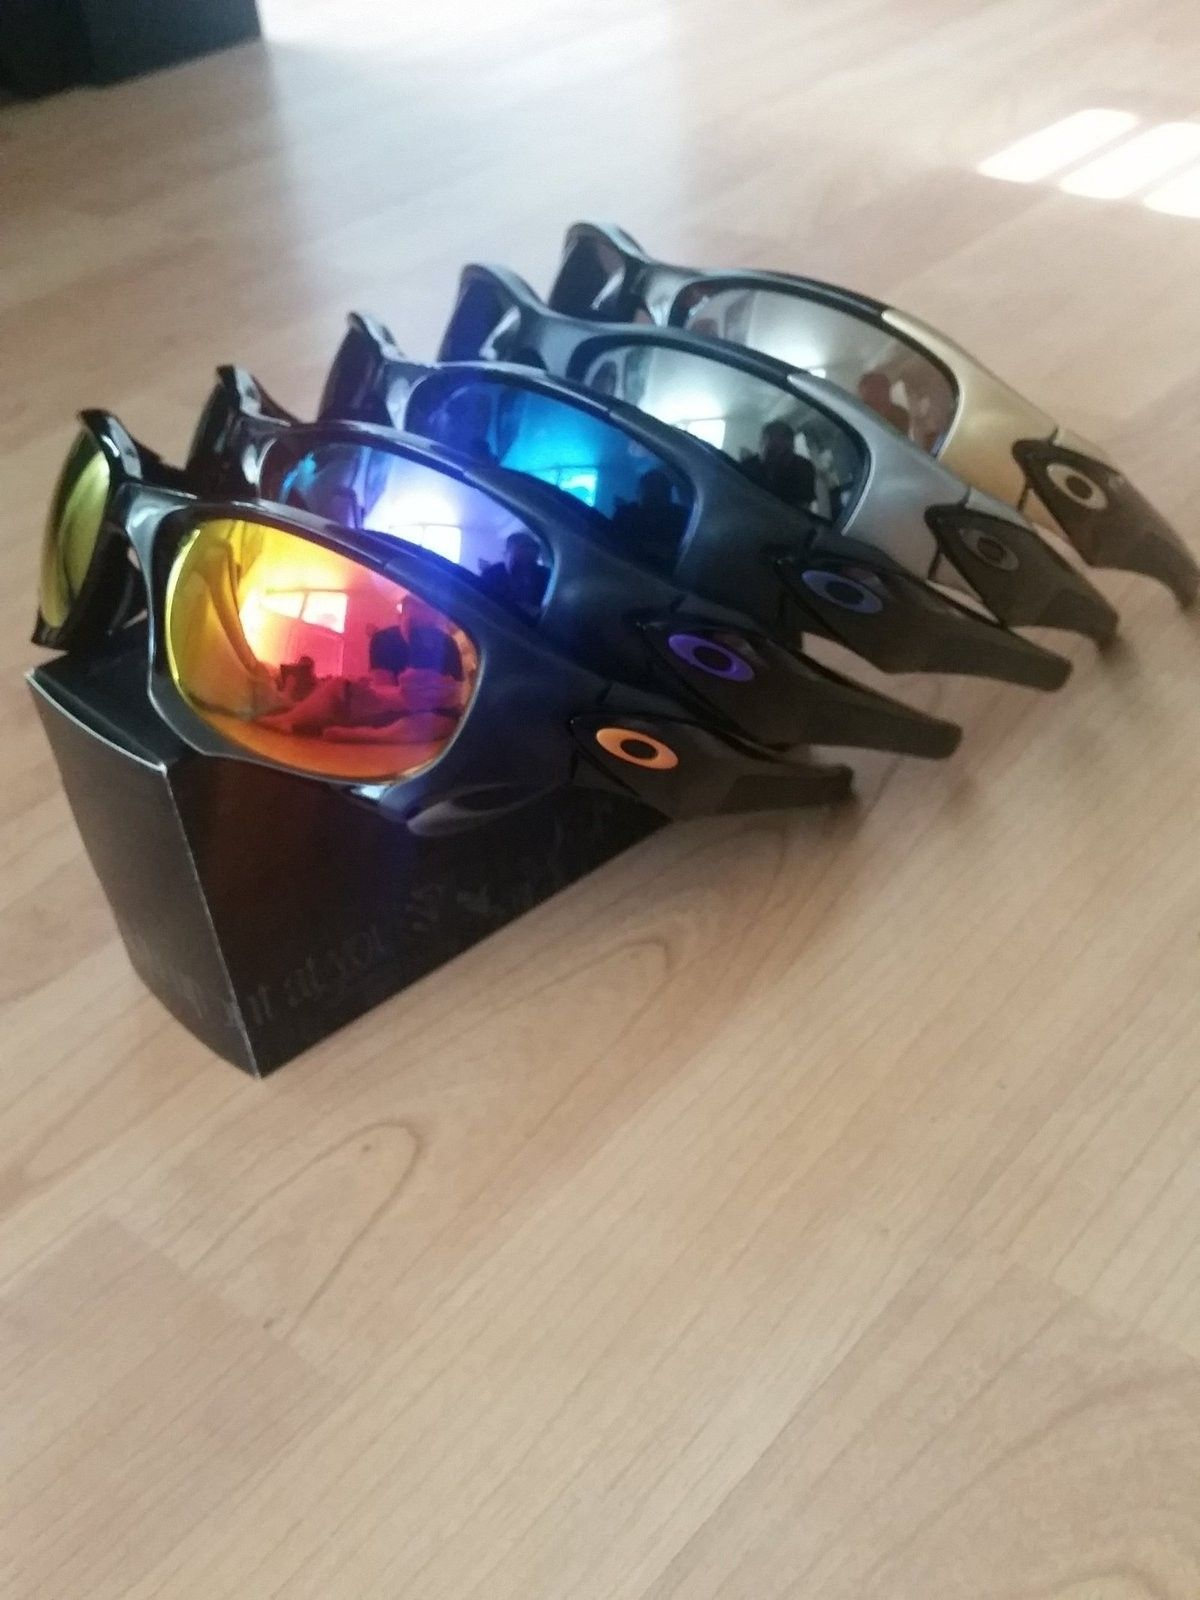 Pitboss 1 or Pitboss 2 custom cut lens options - uploadfromtaptalk1423248938352.jpg